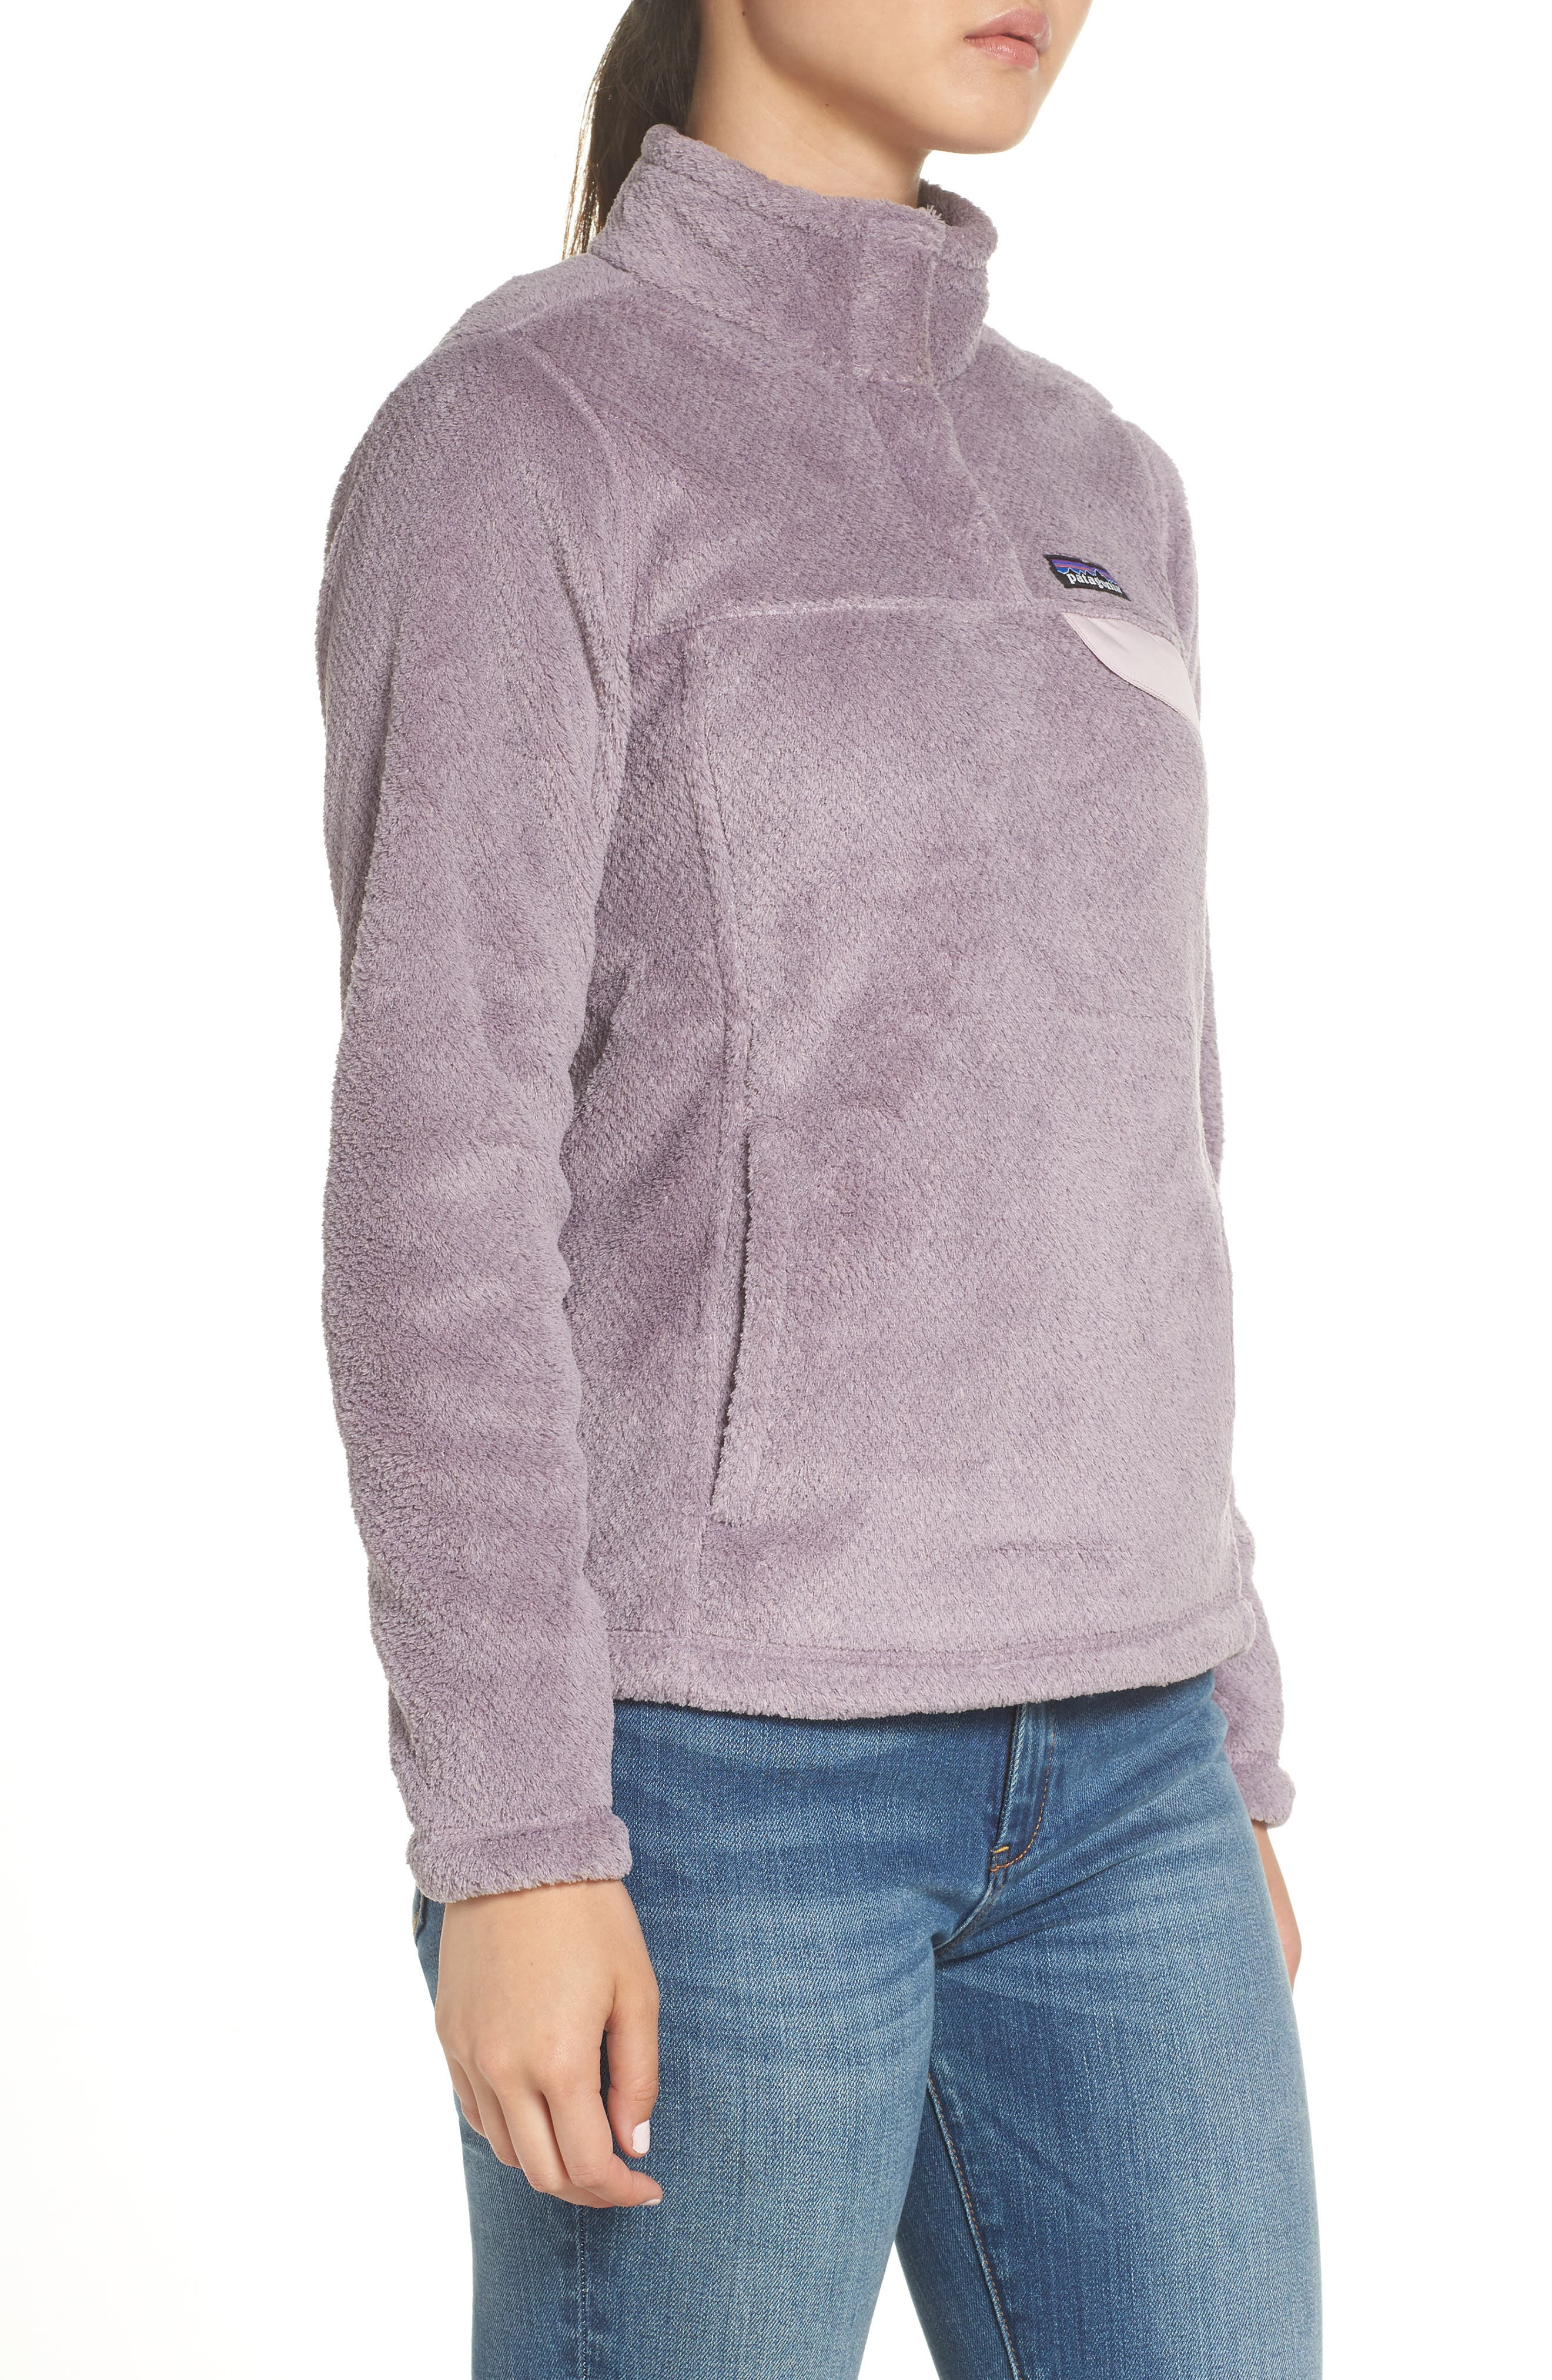 Re-Tool Snap-T<sup>®</sup> Fleece Pullover,                             Alternate thumbnail 3, color,                             SMOKEY VIOLET PURPLE X-DYE